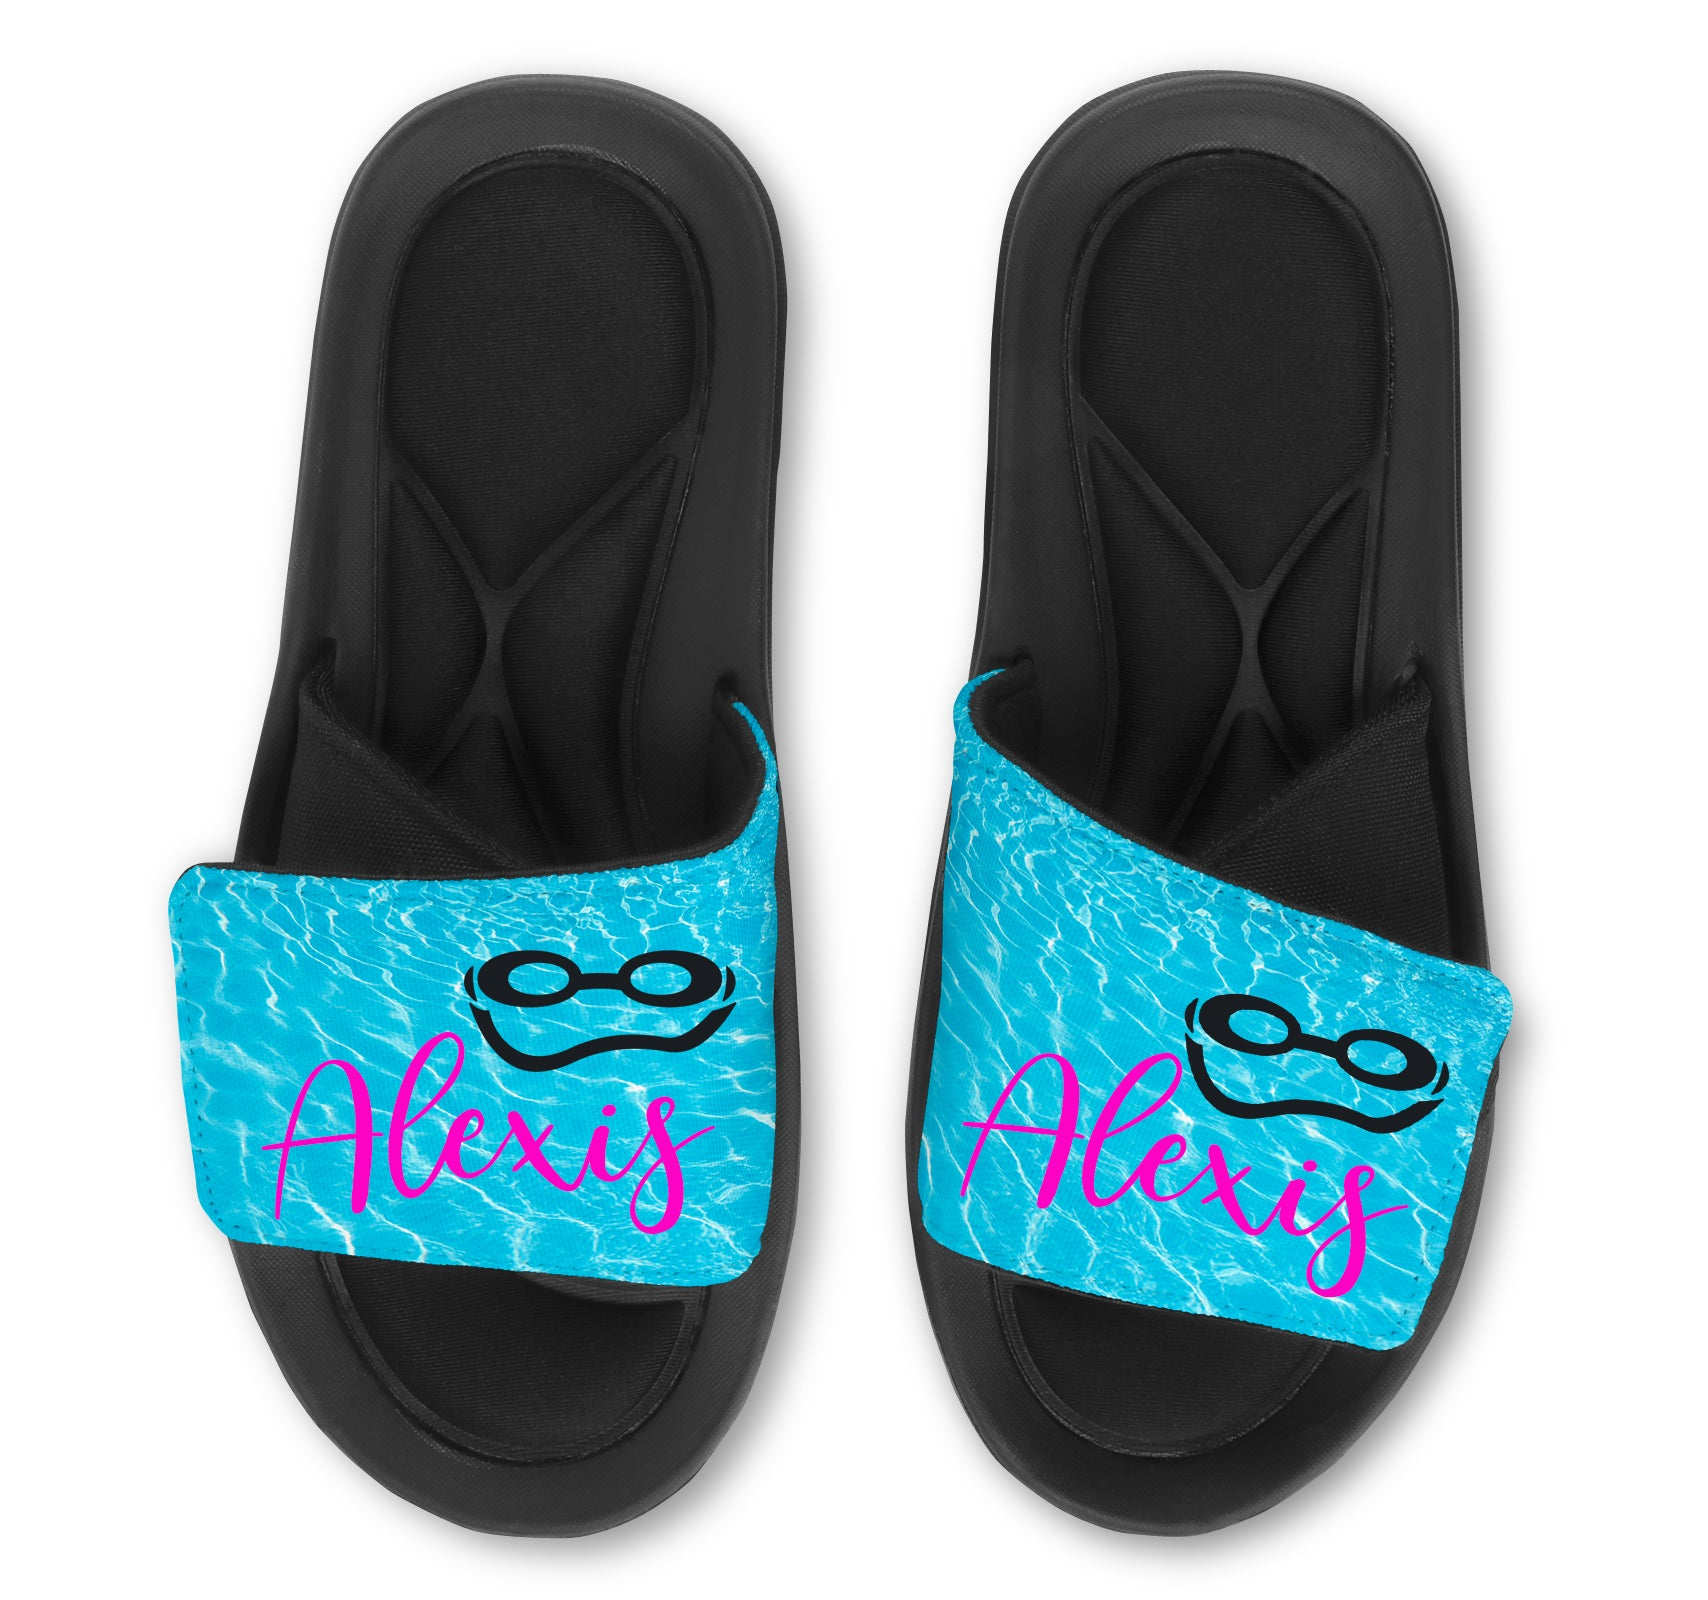 Swim Slides Sandals Flip Flops - Goggles - Add your Name!